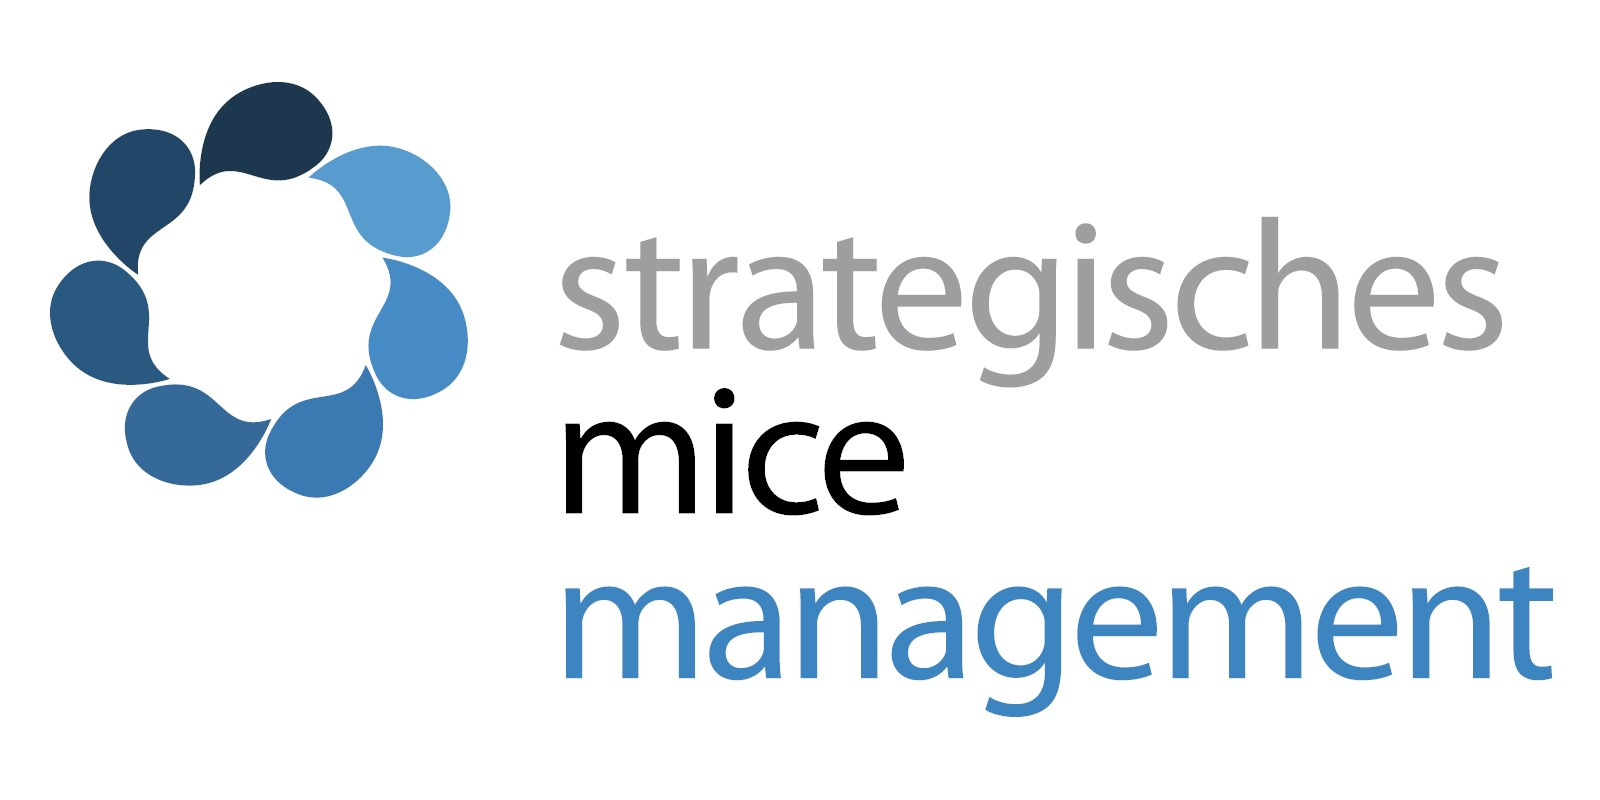 Strategisches Mice Management